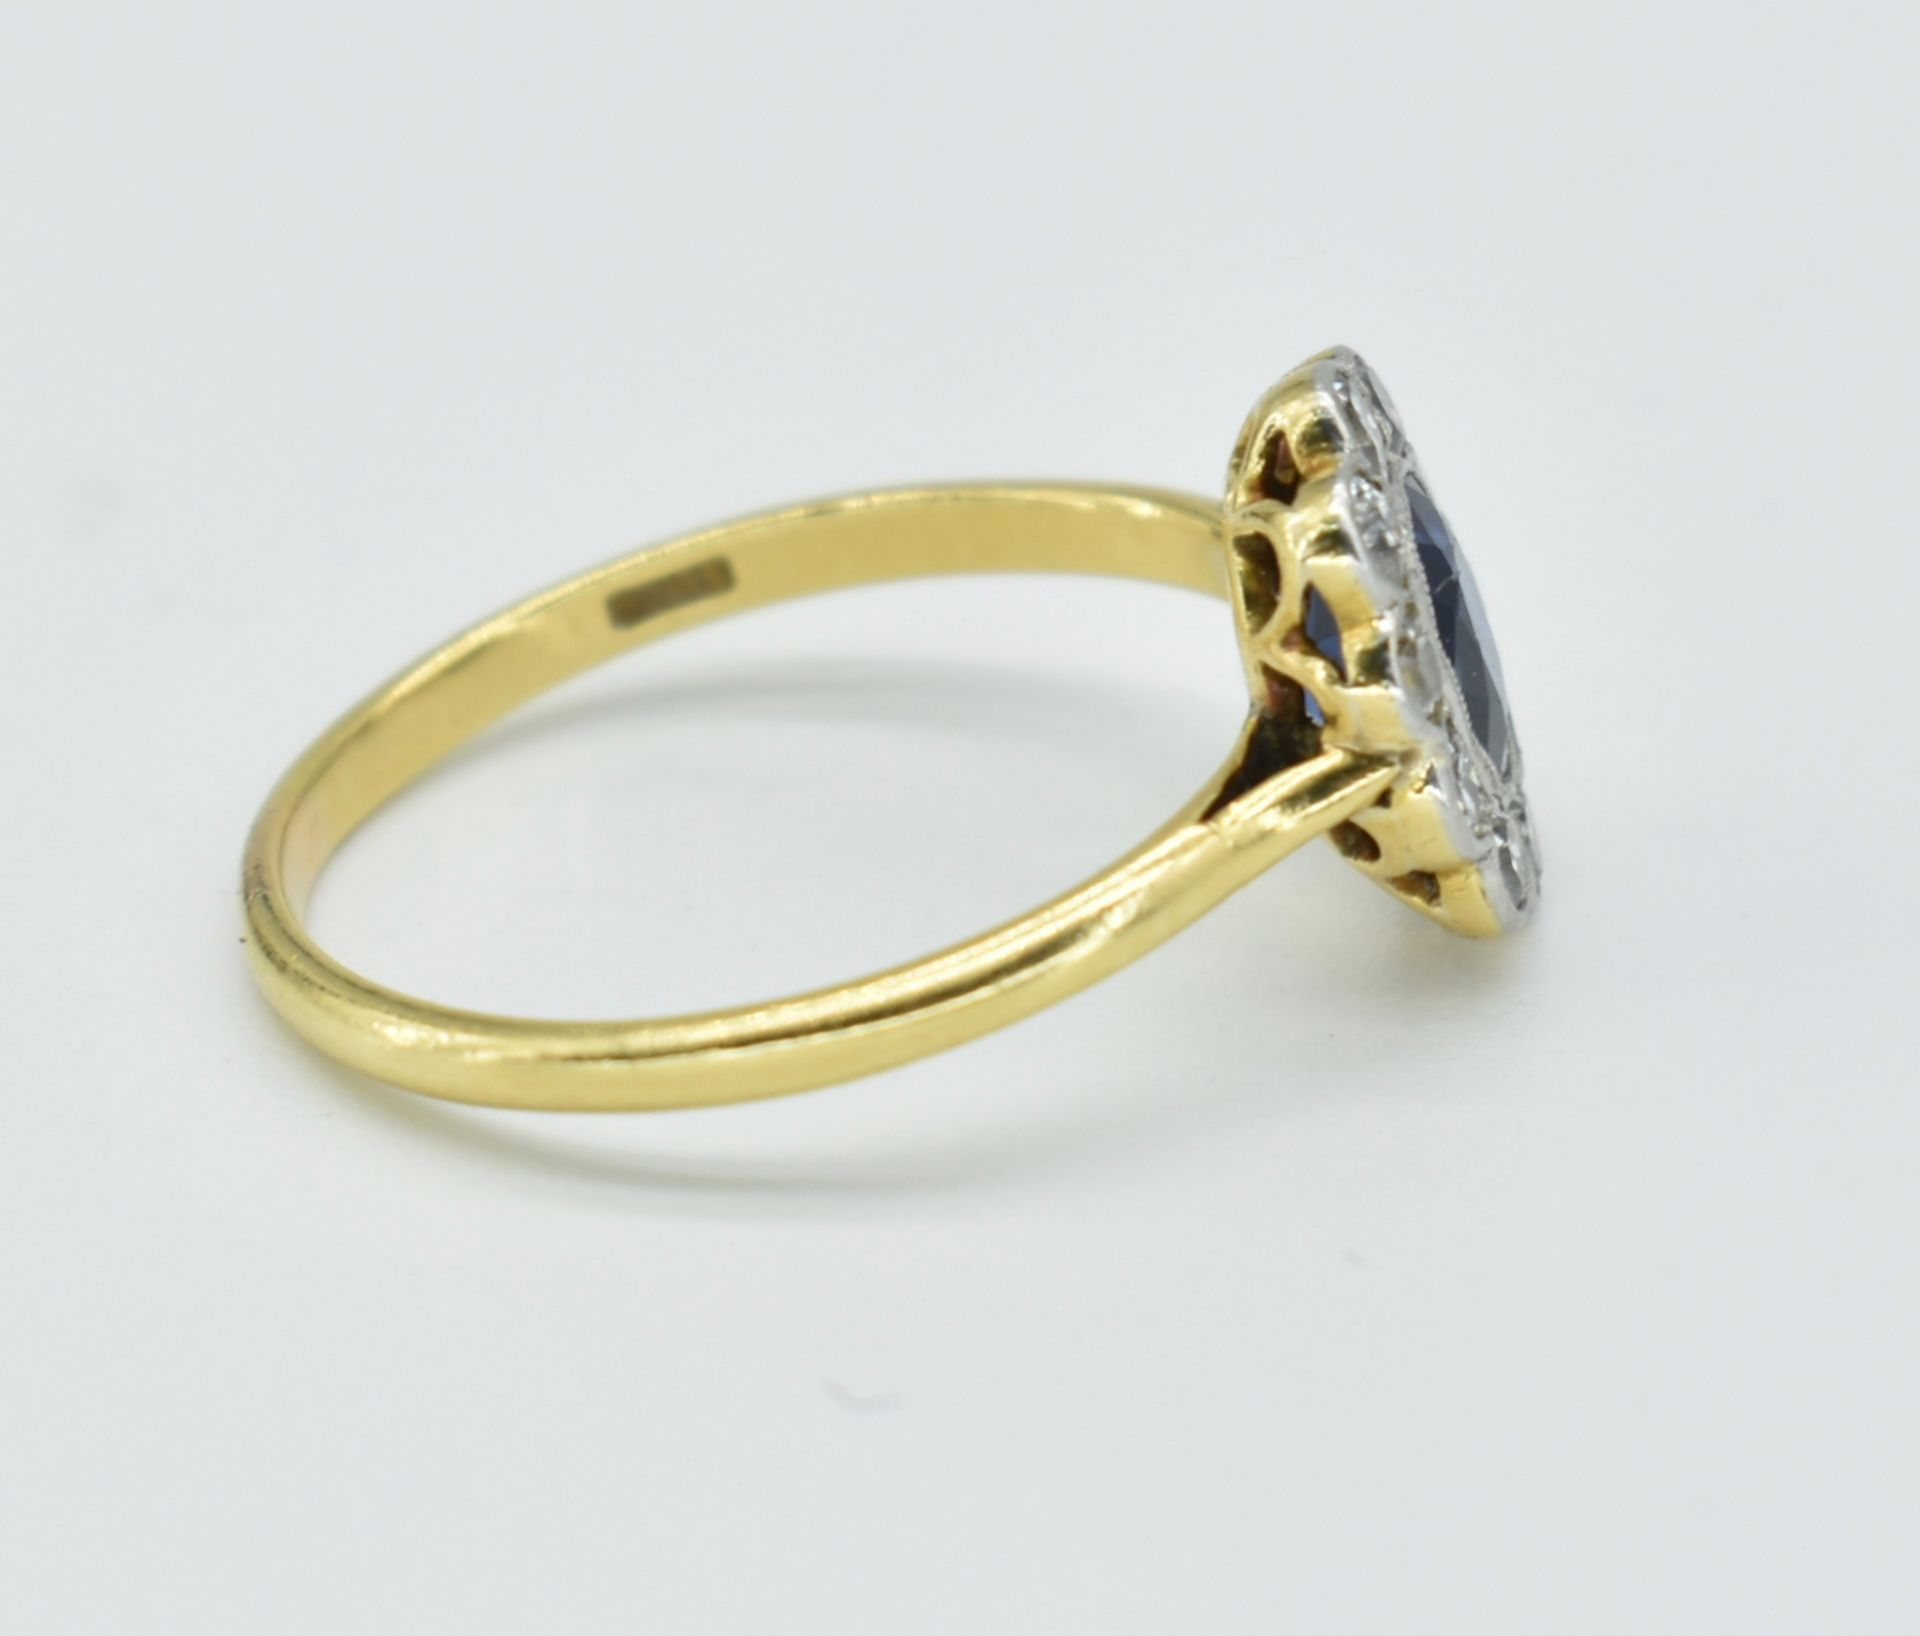 18ct Gold Sapphire & Diamond Cluster Ring - Image 4 of 6